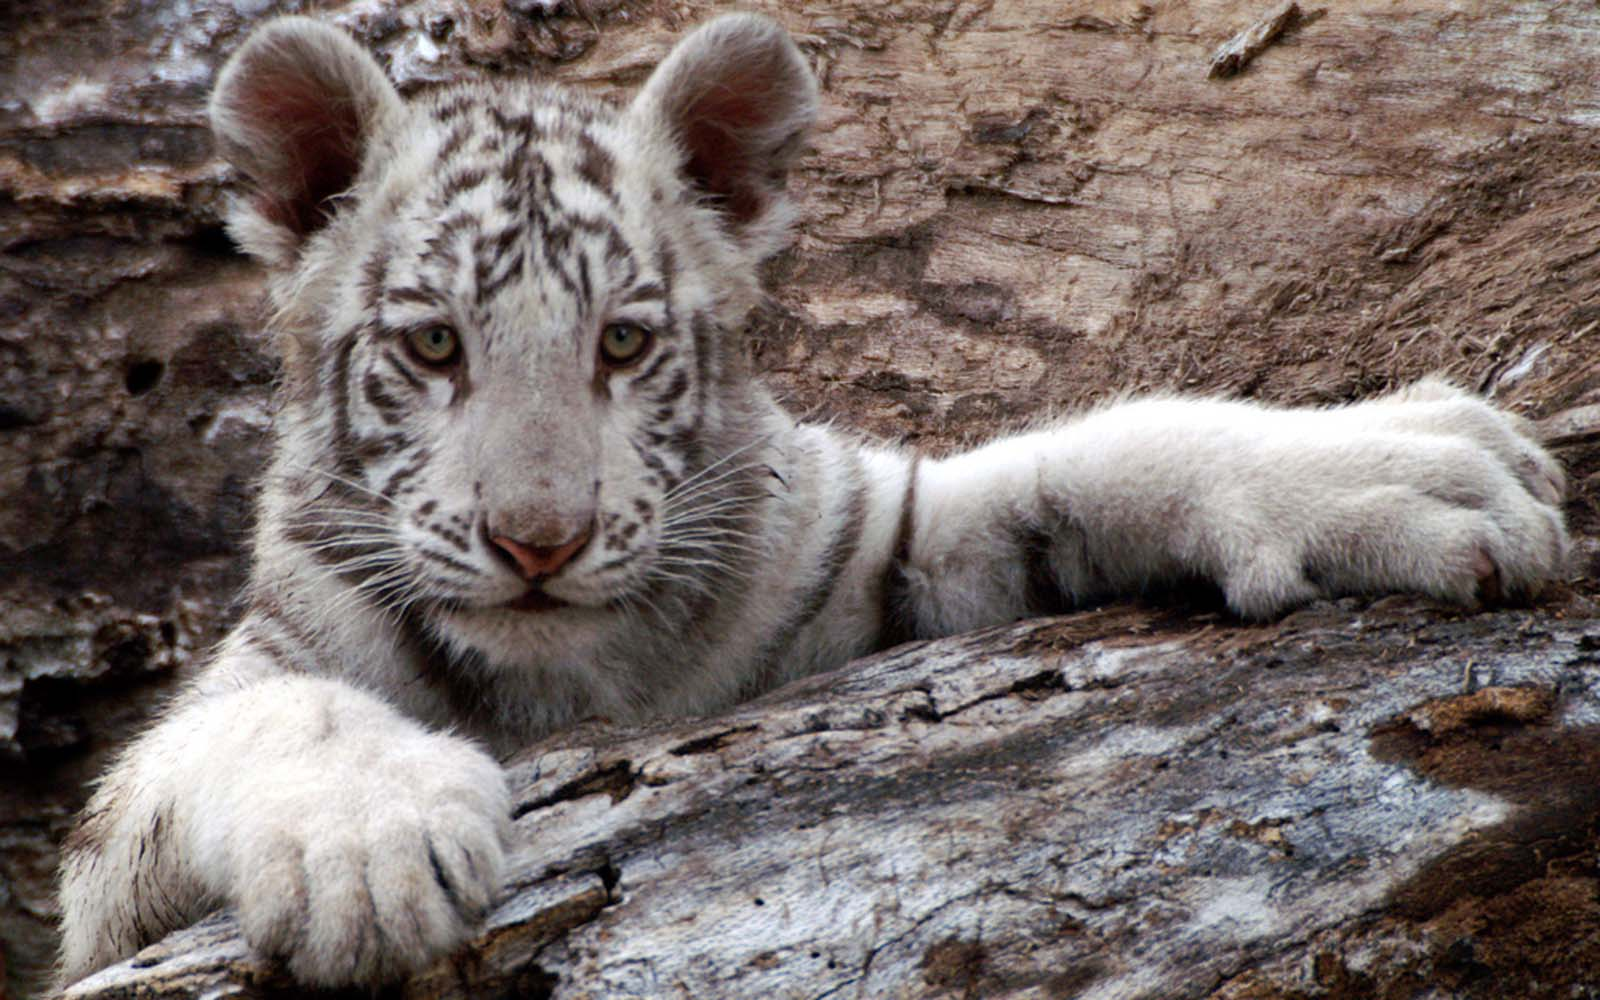 Baby White Tigers Wallpapers - 2013 Wallpapers - photo#22